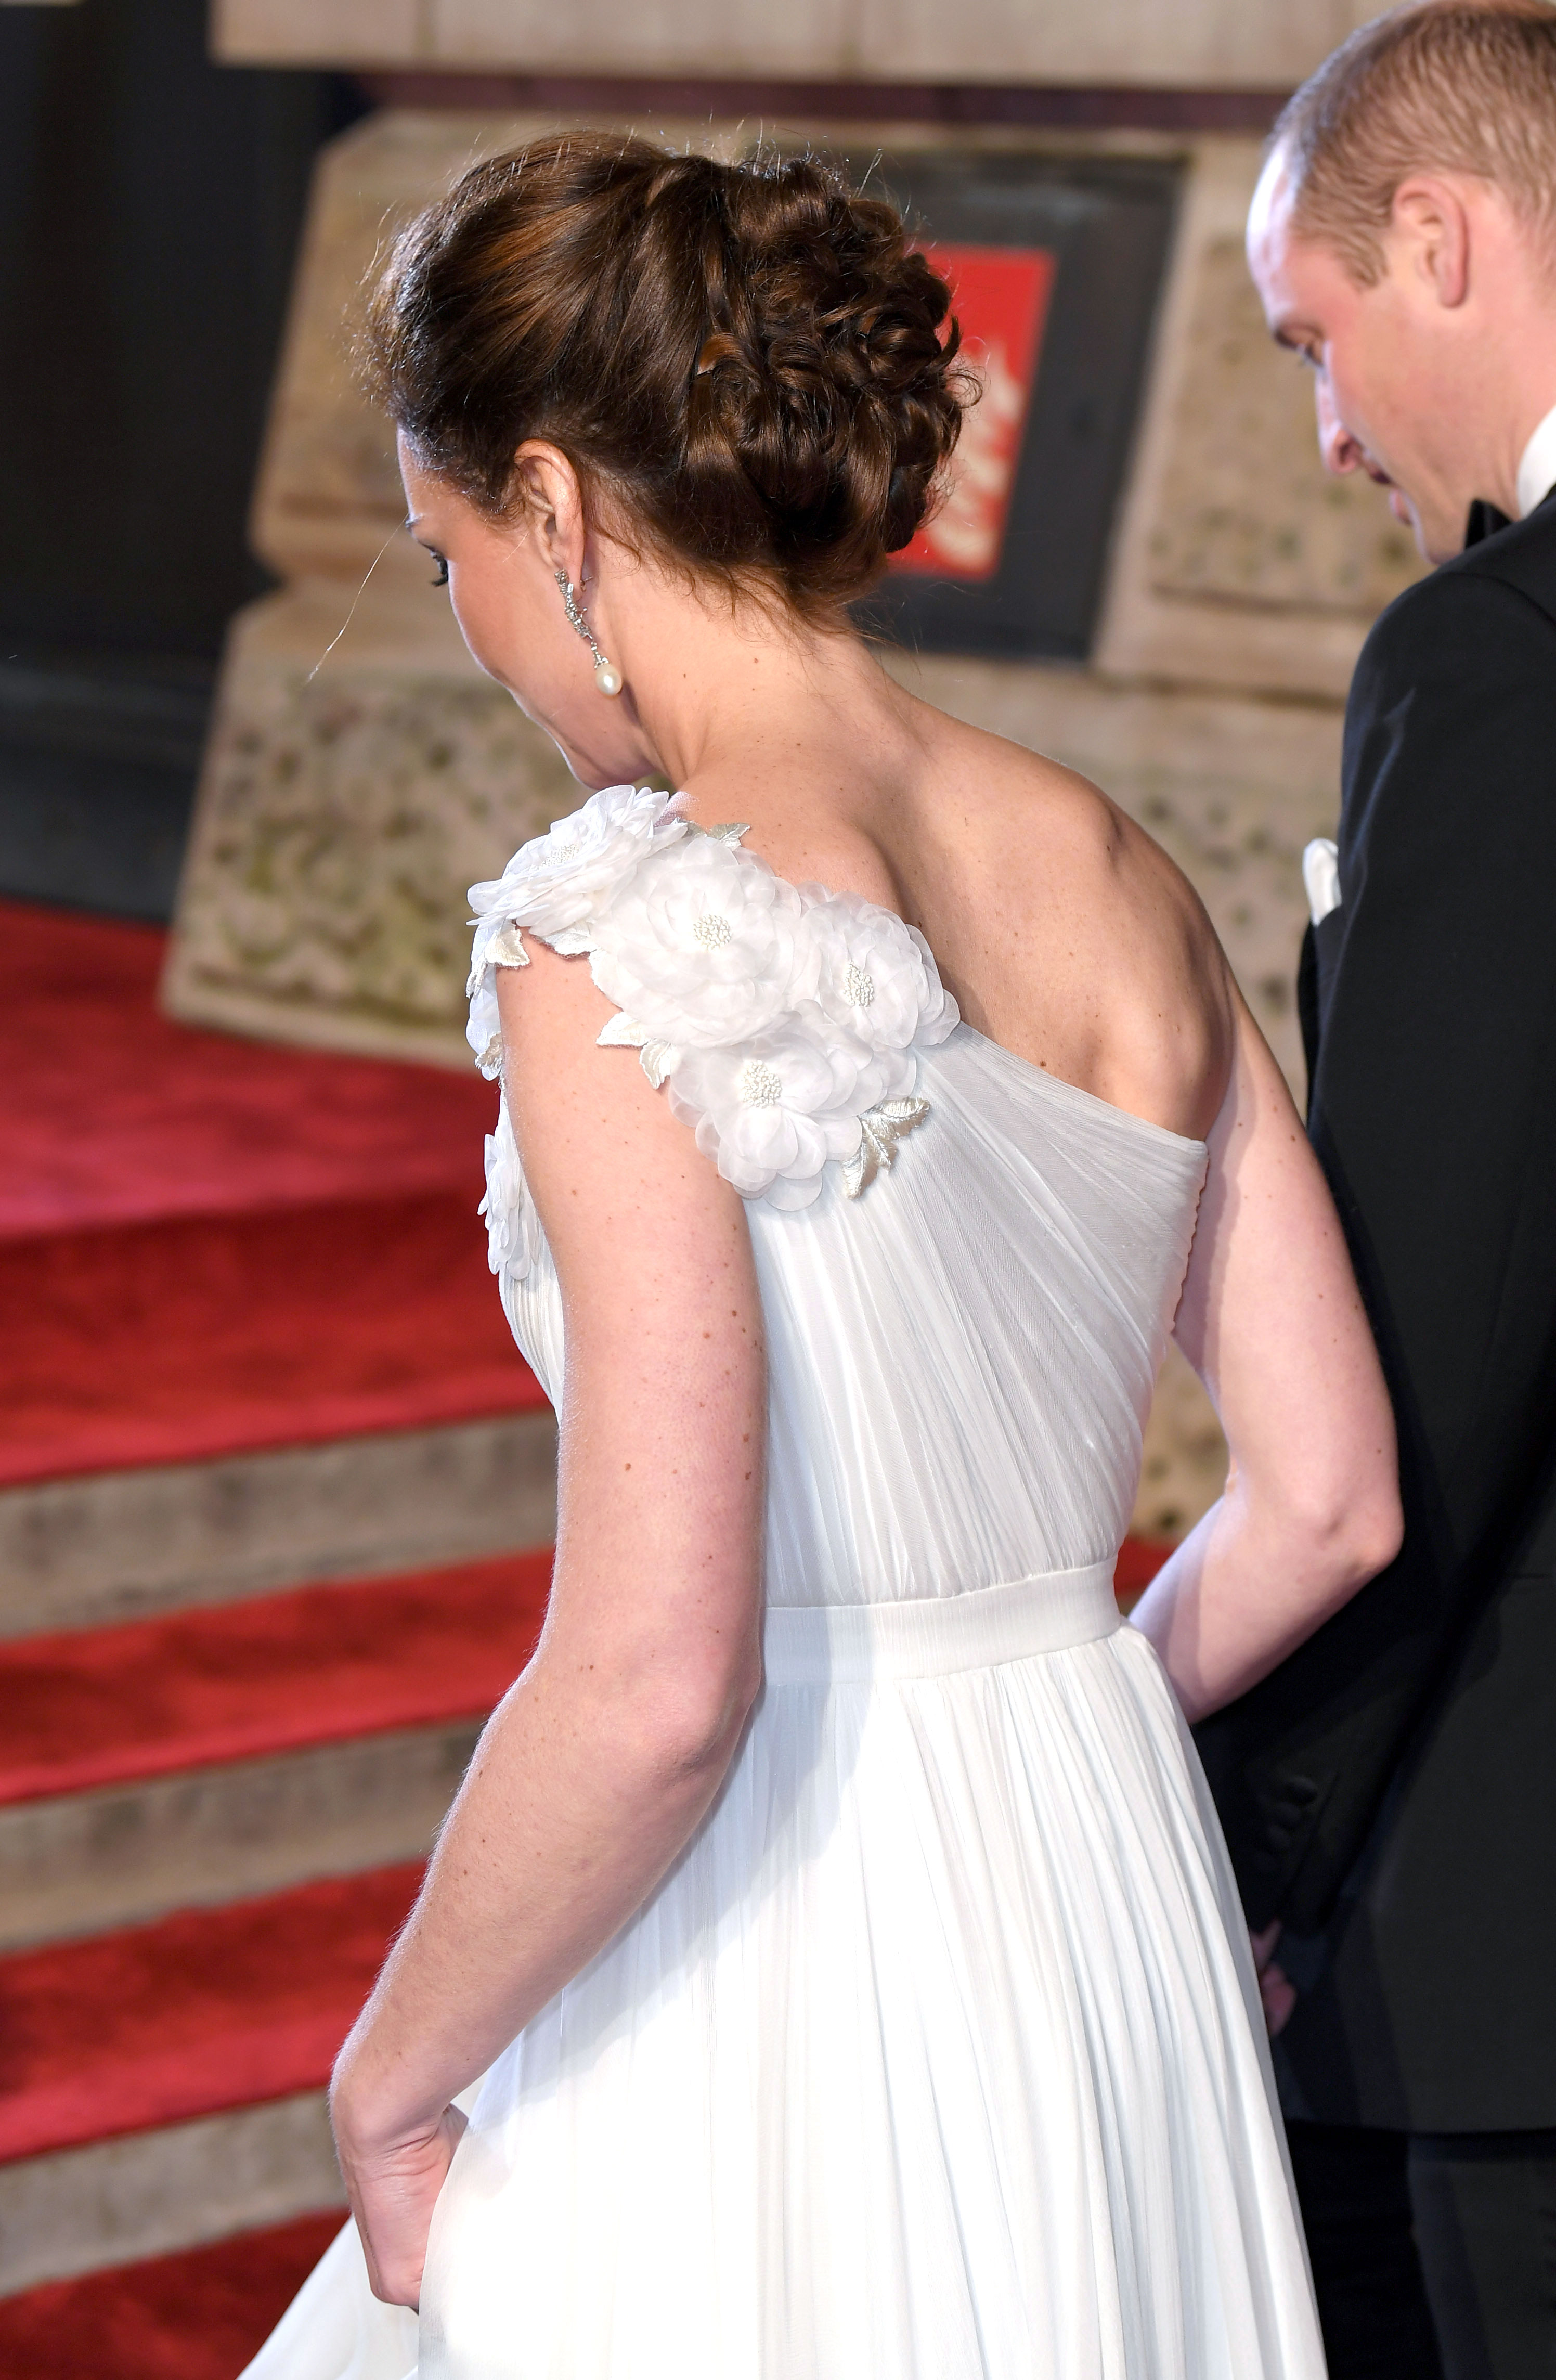 Kate Middleton Stuns at the BAFTAs - The Duchess of Cambridge wore her hair up in an intricate updo.